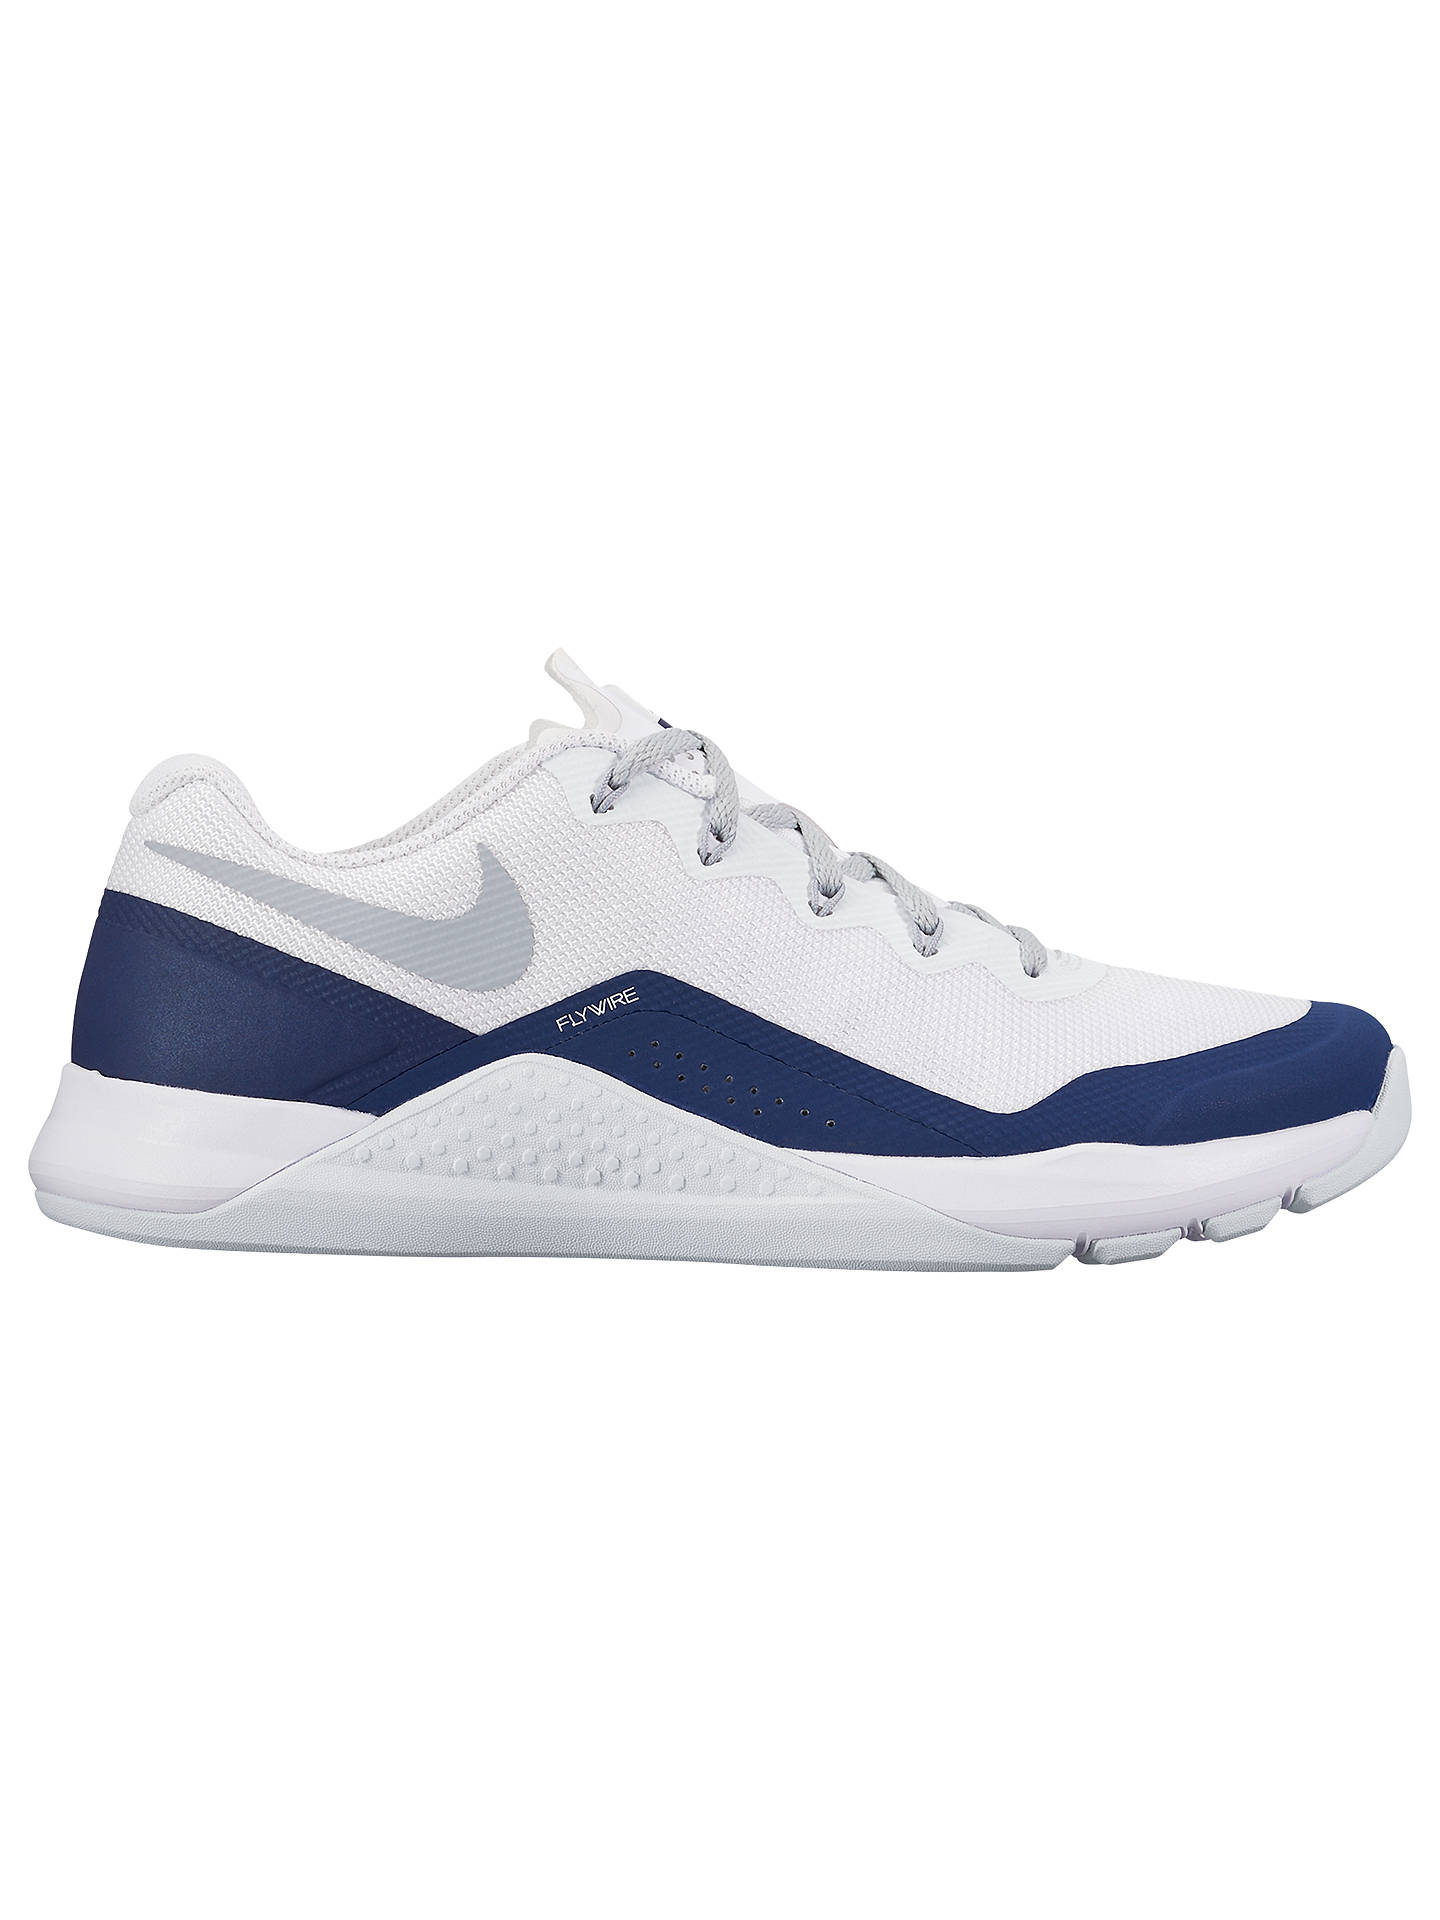 afd6804d8b70 Nike Metcon Repper DSX Women s Training Shoes at John Lewis   Partners